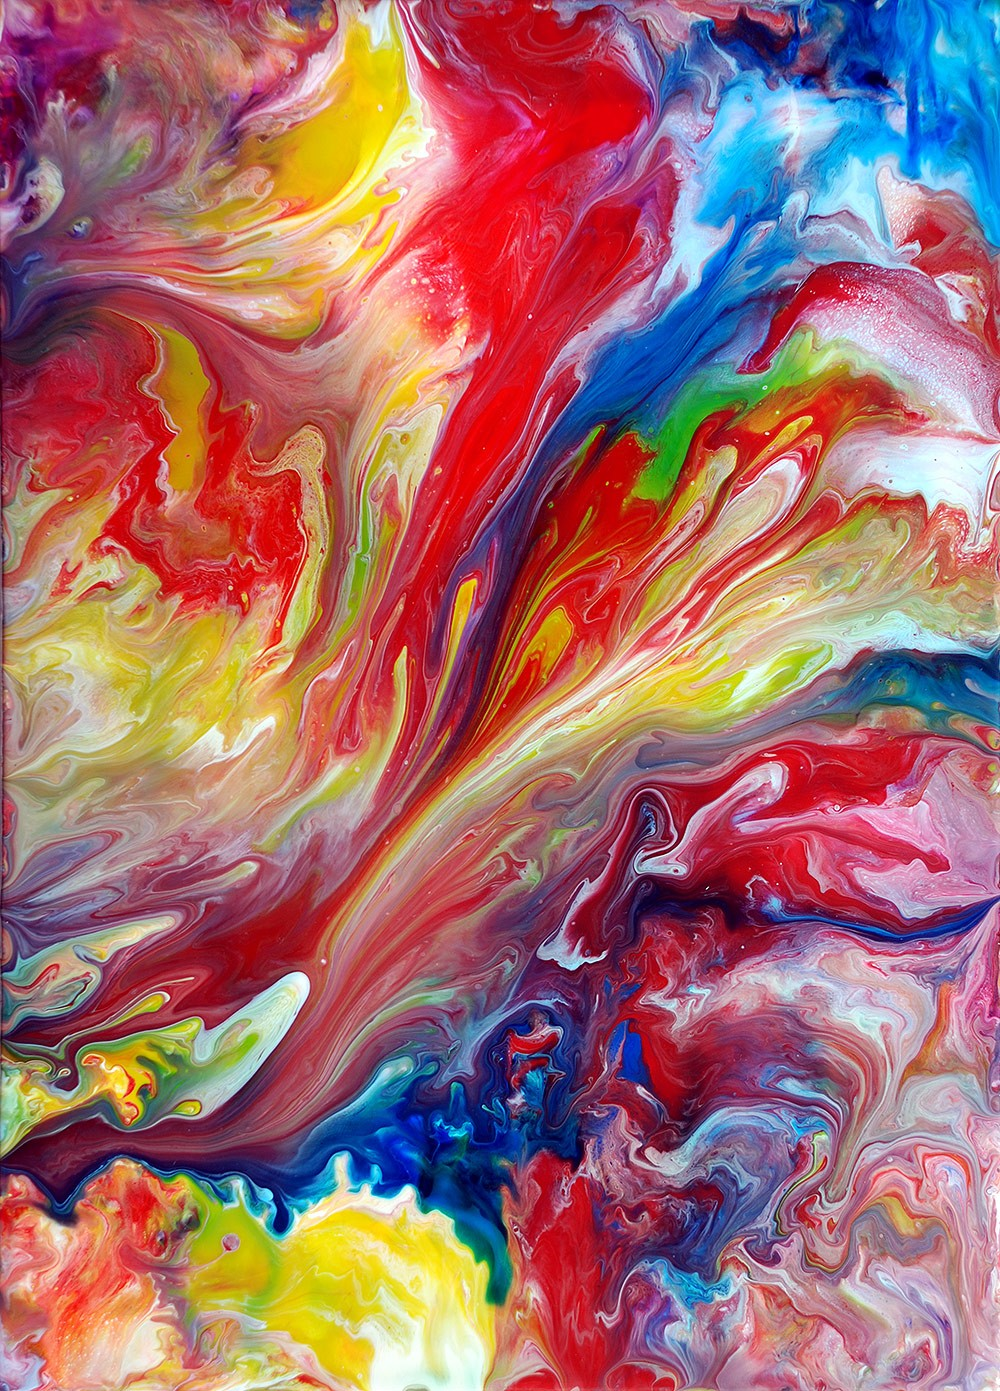 How To Mix Colors For Glass Painting